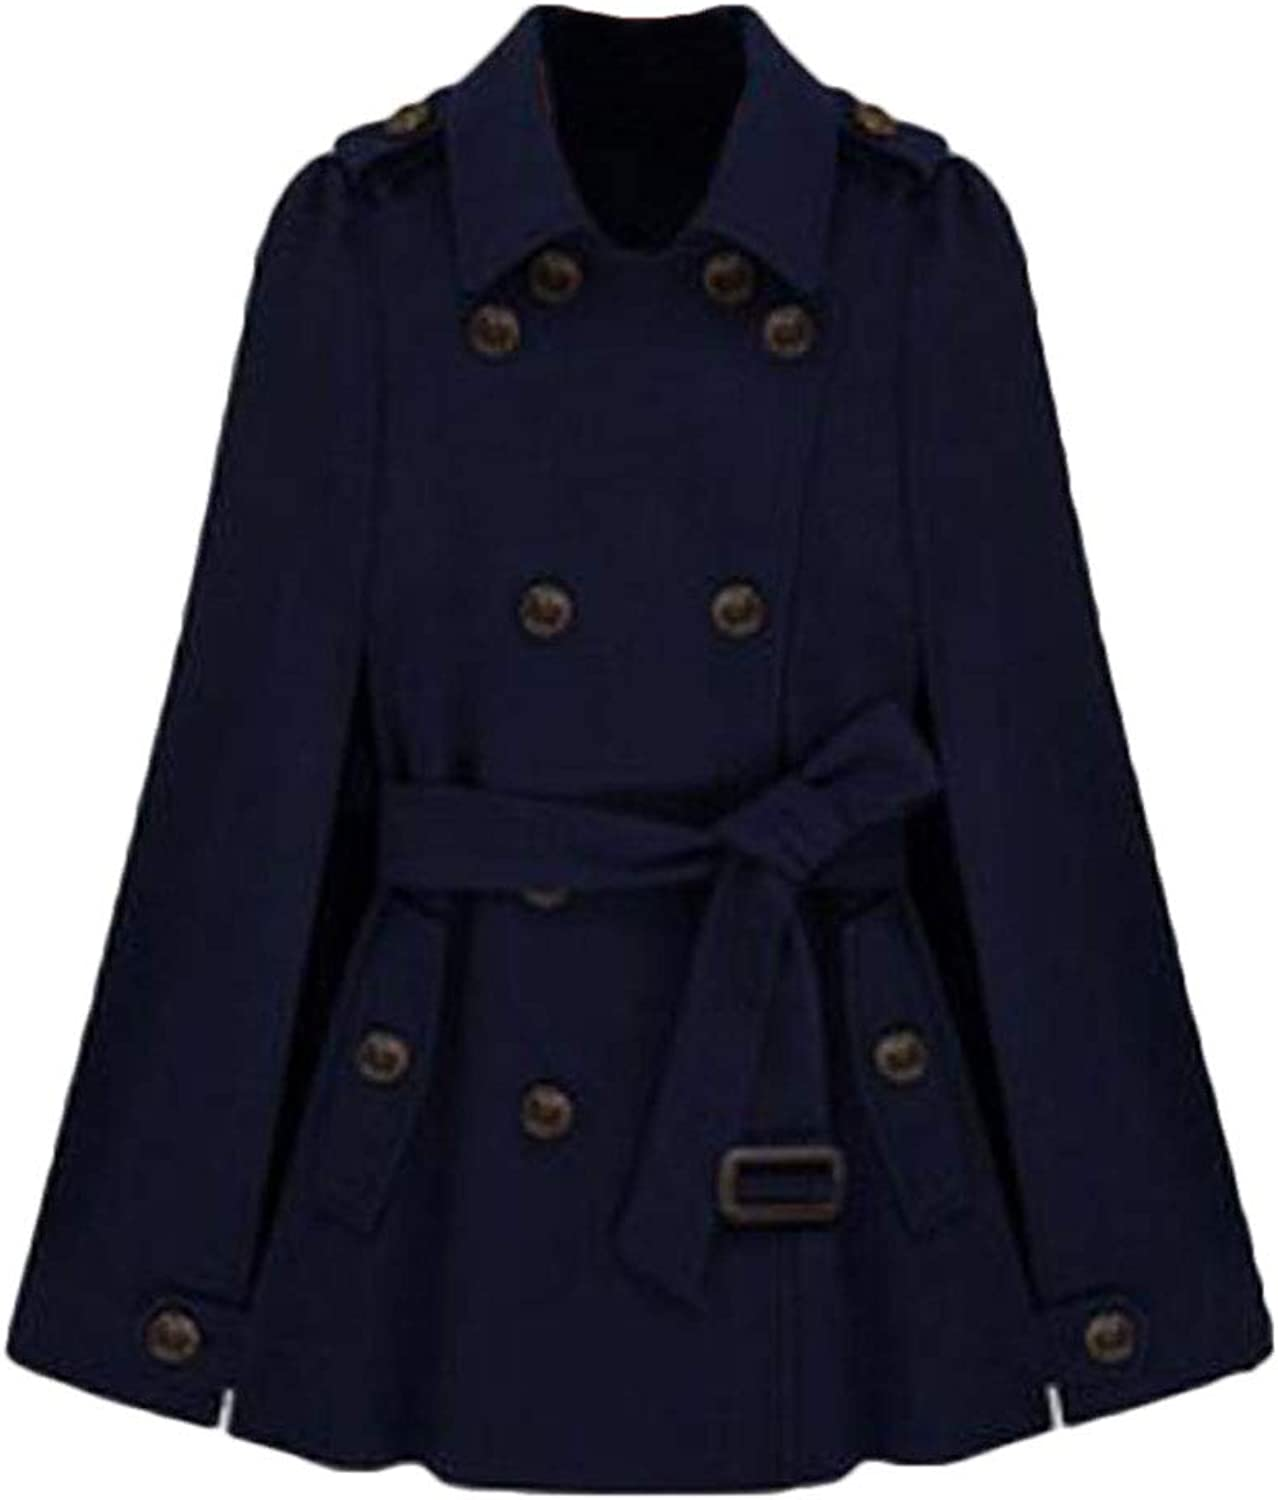 Domple Women Cape Double Breasted Shawl Belted Stylish Pea Coat